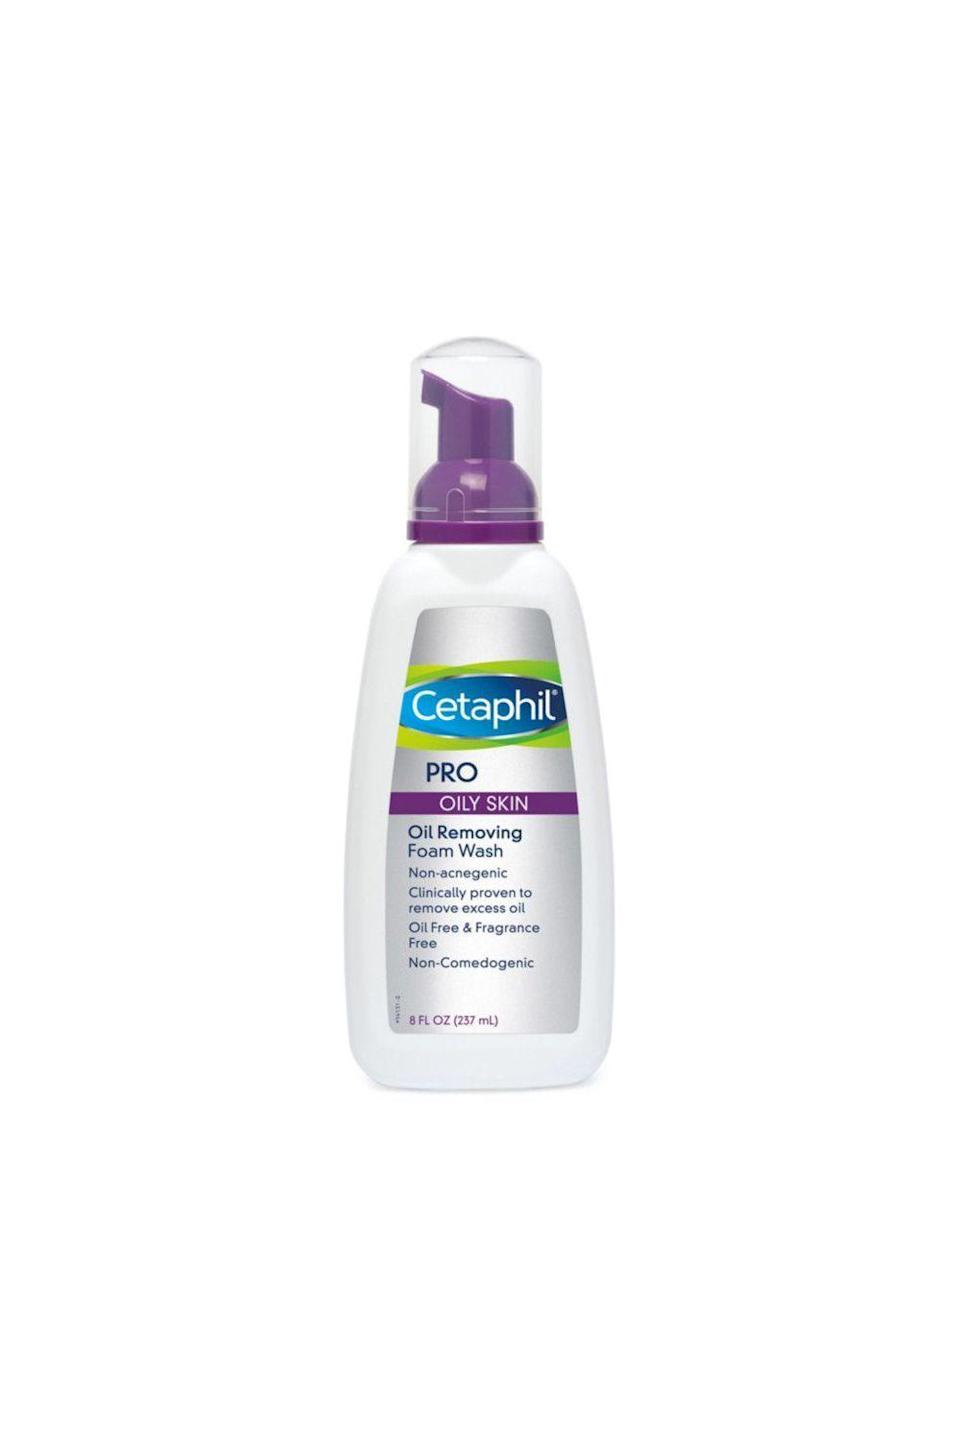 """<p><strong>Cetaphil</strong></p><p>ulta.com</p><p><strong>$14.99</strong></p><p><a href=""""https://go.redirectingat.com?id=74968X1596630&url=https%3A%2F%2Fwww.ulta.com%2Fp%2Fdermacontrol-oil-control-foam-wash-xlsImpprod5140063&sref=https%3A%2F%2Fwww.oprahdaily.com%2Fbeauty%2Fskin-makeup%2Fg36743937%2Fbest-face-wash-for-acne%2F"""" rel=""""nofollow noopener"""" target=""""_blank"""" data-ylk=""""slk:Shop Now"""" class=""""link rapid-noclick-resp"""">Shop Now</a></p><p>If you have oily skin, you probably like the feel of a foaming cleanser. But that squeaky-clean aftereffect is bad news for your face in the long run. This wash, however, uses a zinc-based cleansing system that bubbles up without totally messing up your skin's natural barrier. """"It's also great at removing makeup,"""" says Zeichner. </p>"""